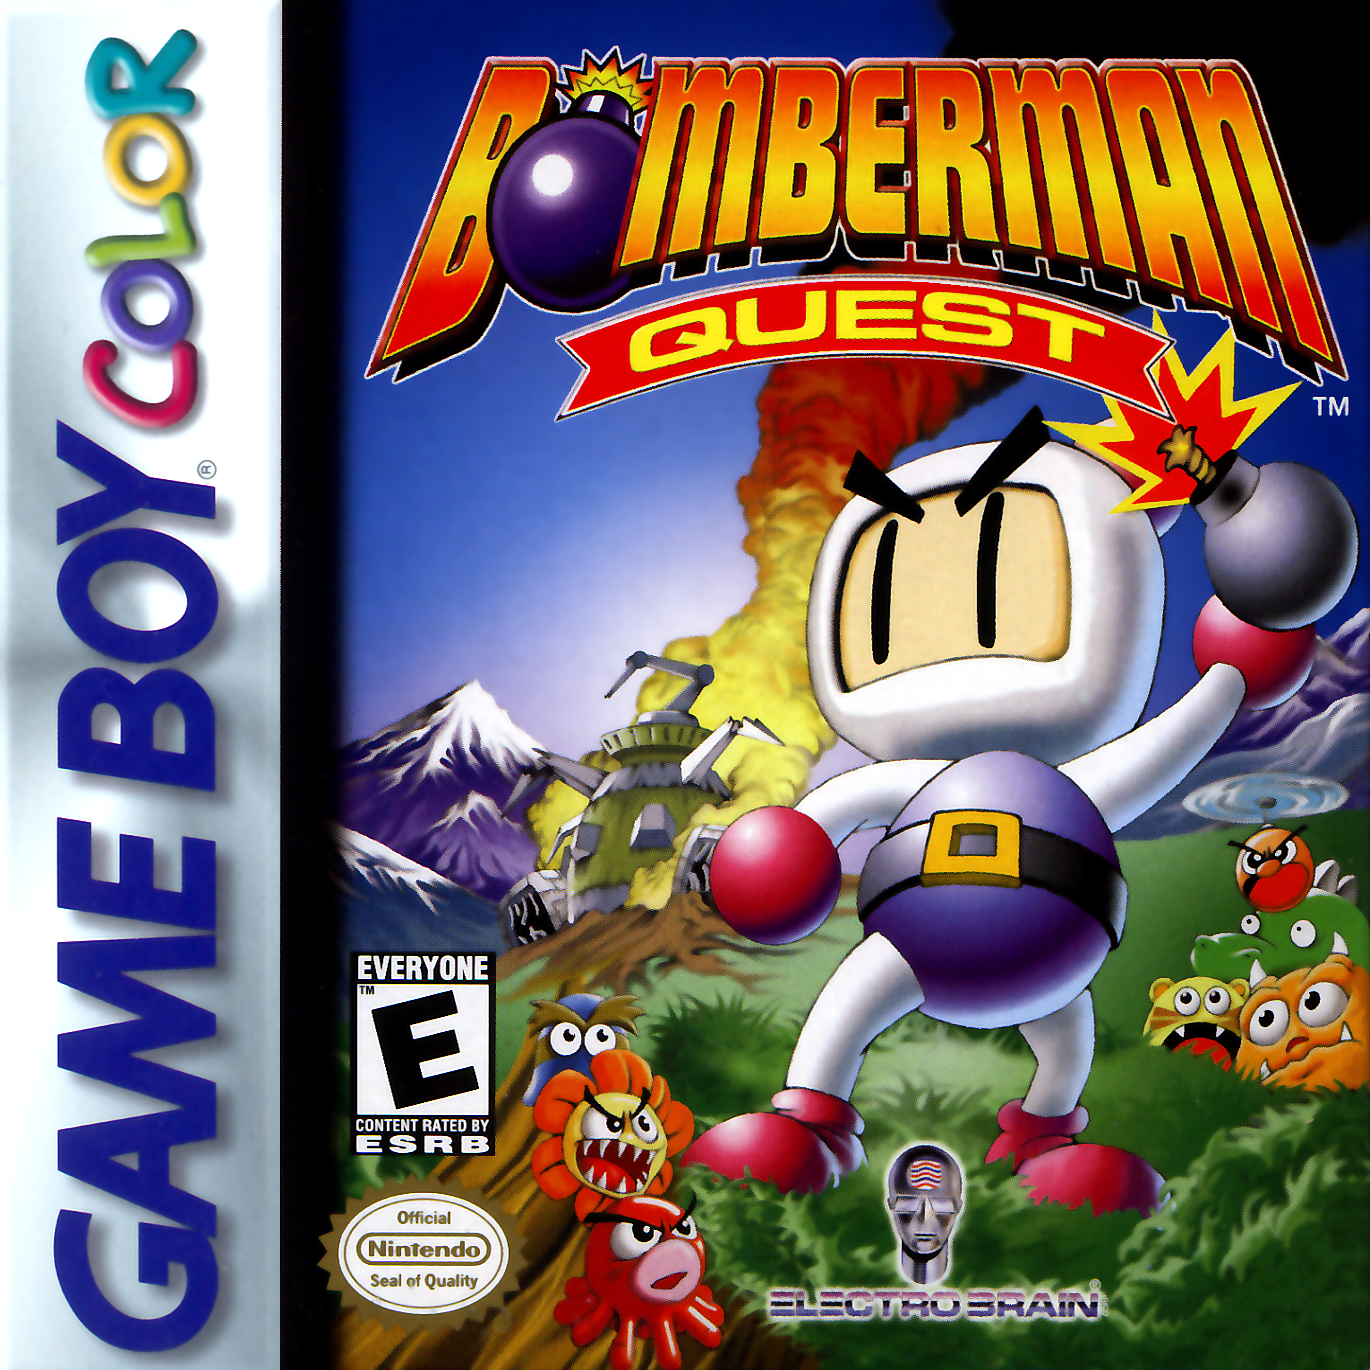 Game boy color online games - Bomberman Quest Nintendo Game Boy Color Cover Artwork